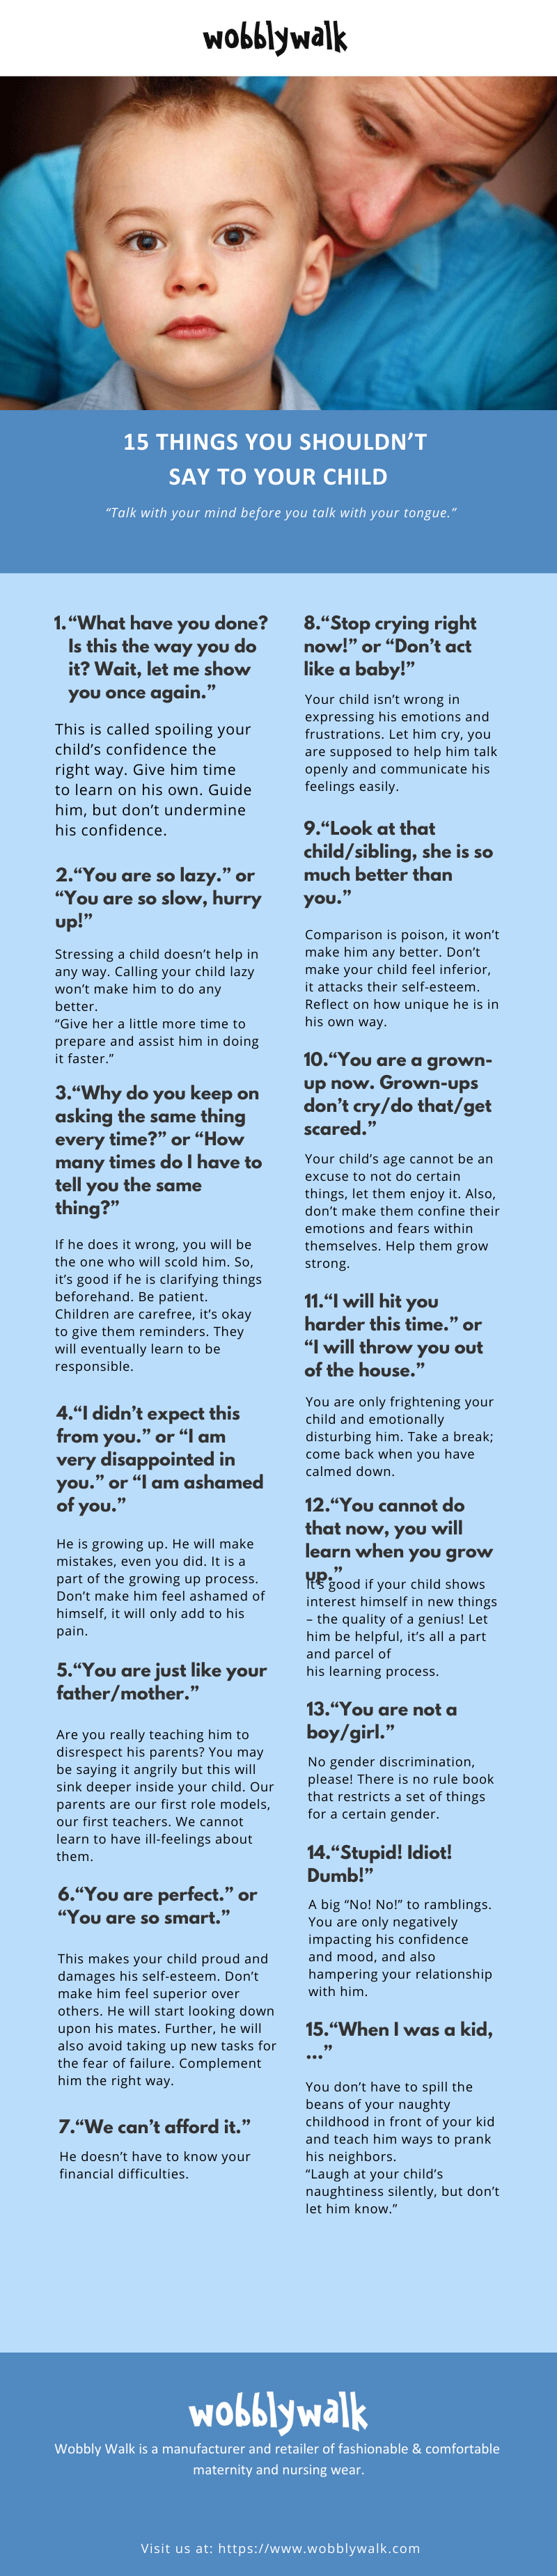 Things to Never Say to Child - Infographic